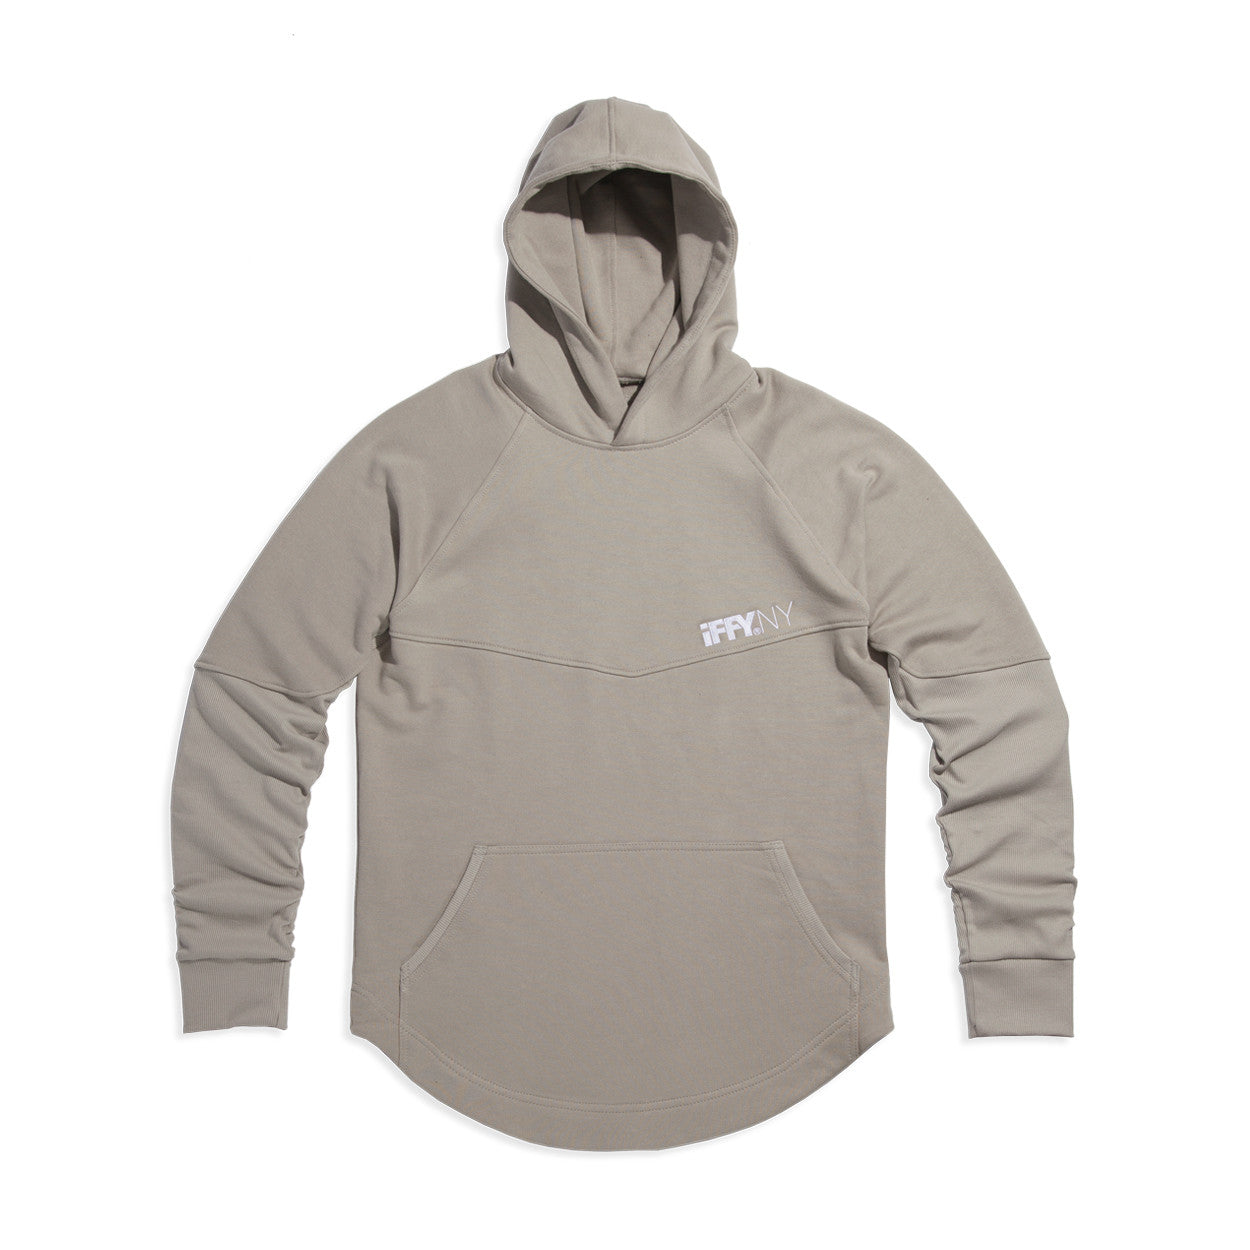 IFFY NY Hunter hoodie in stone